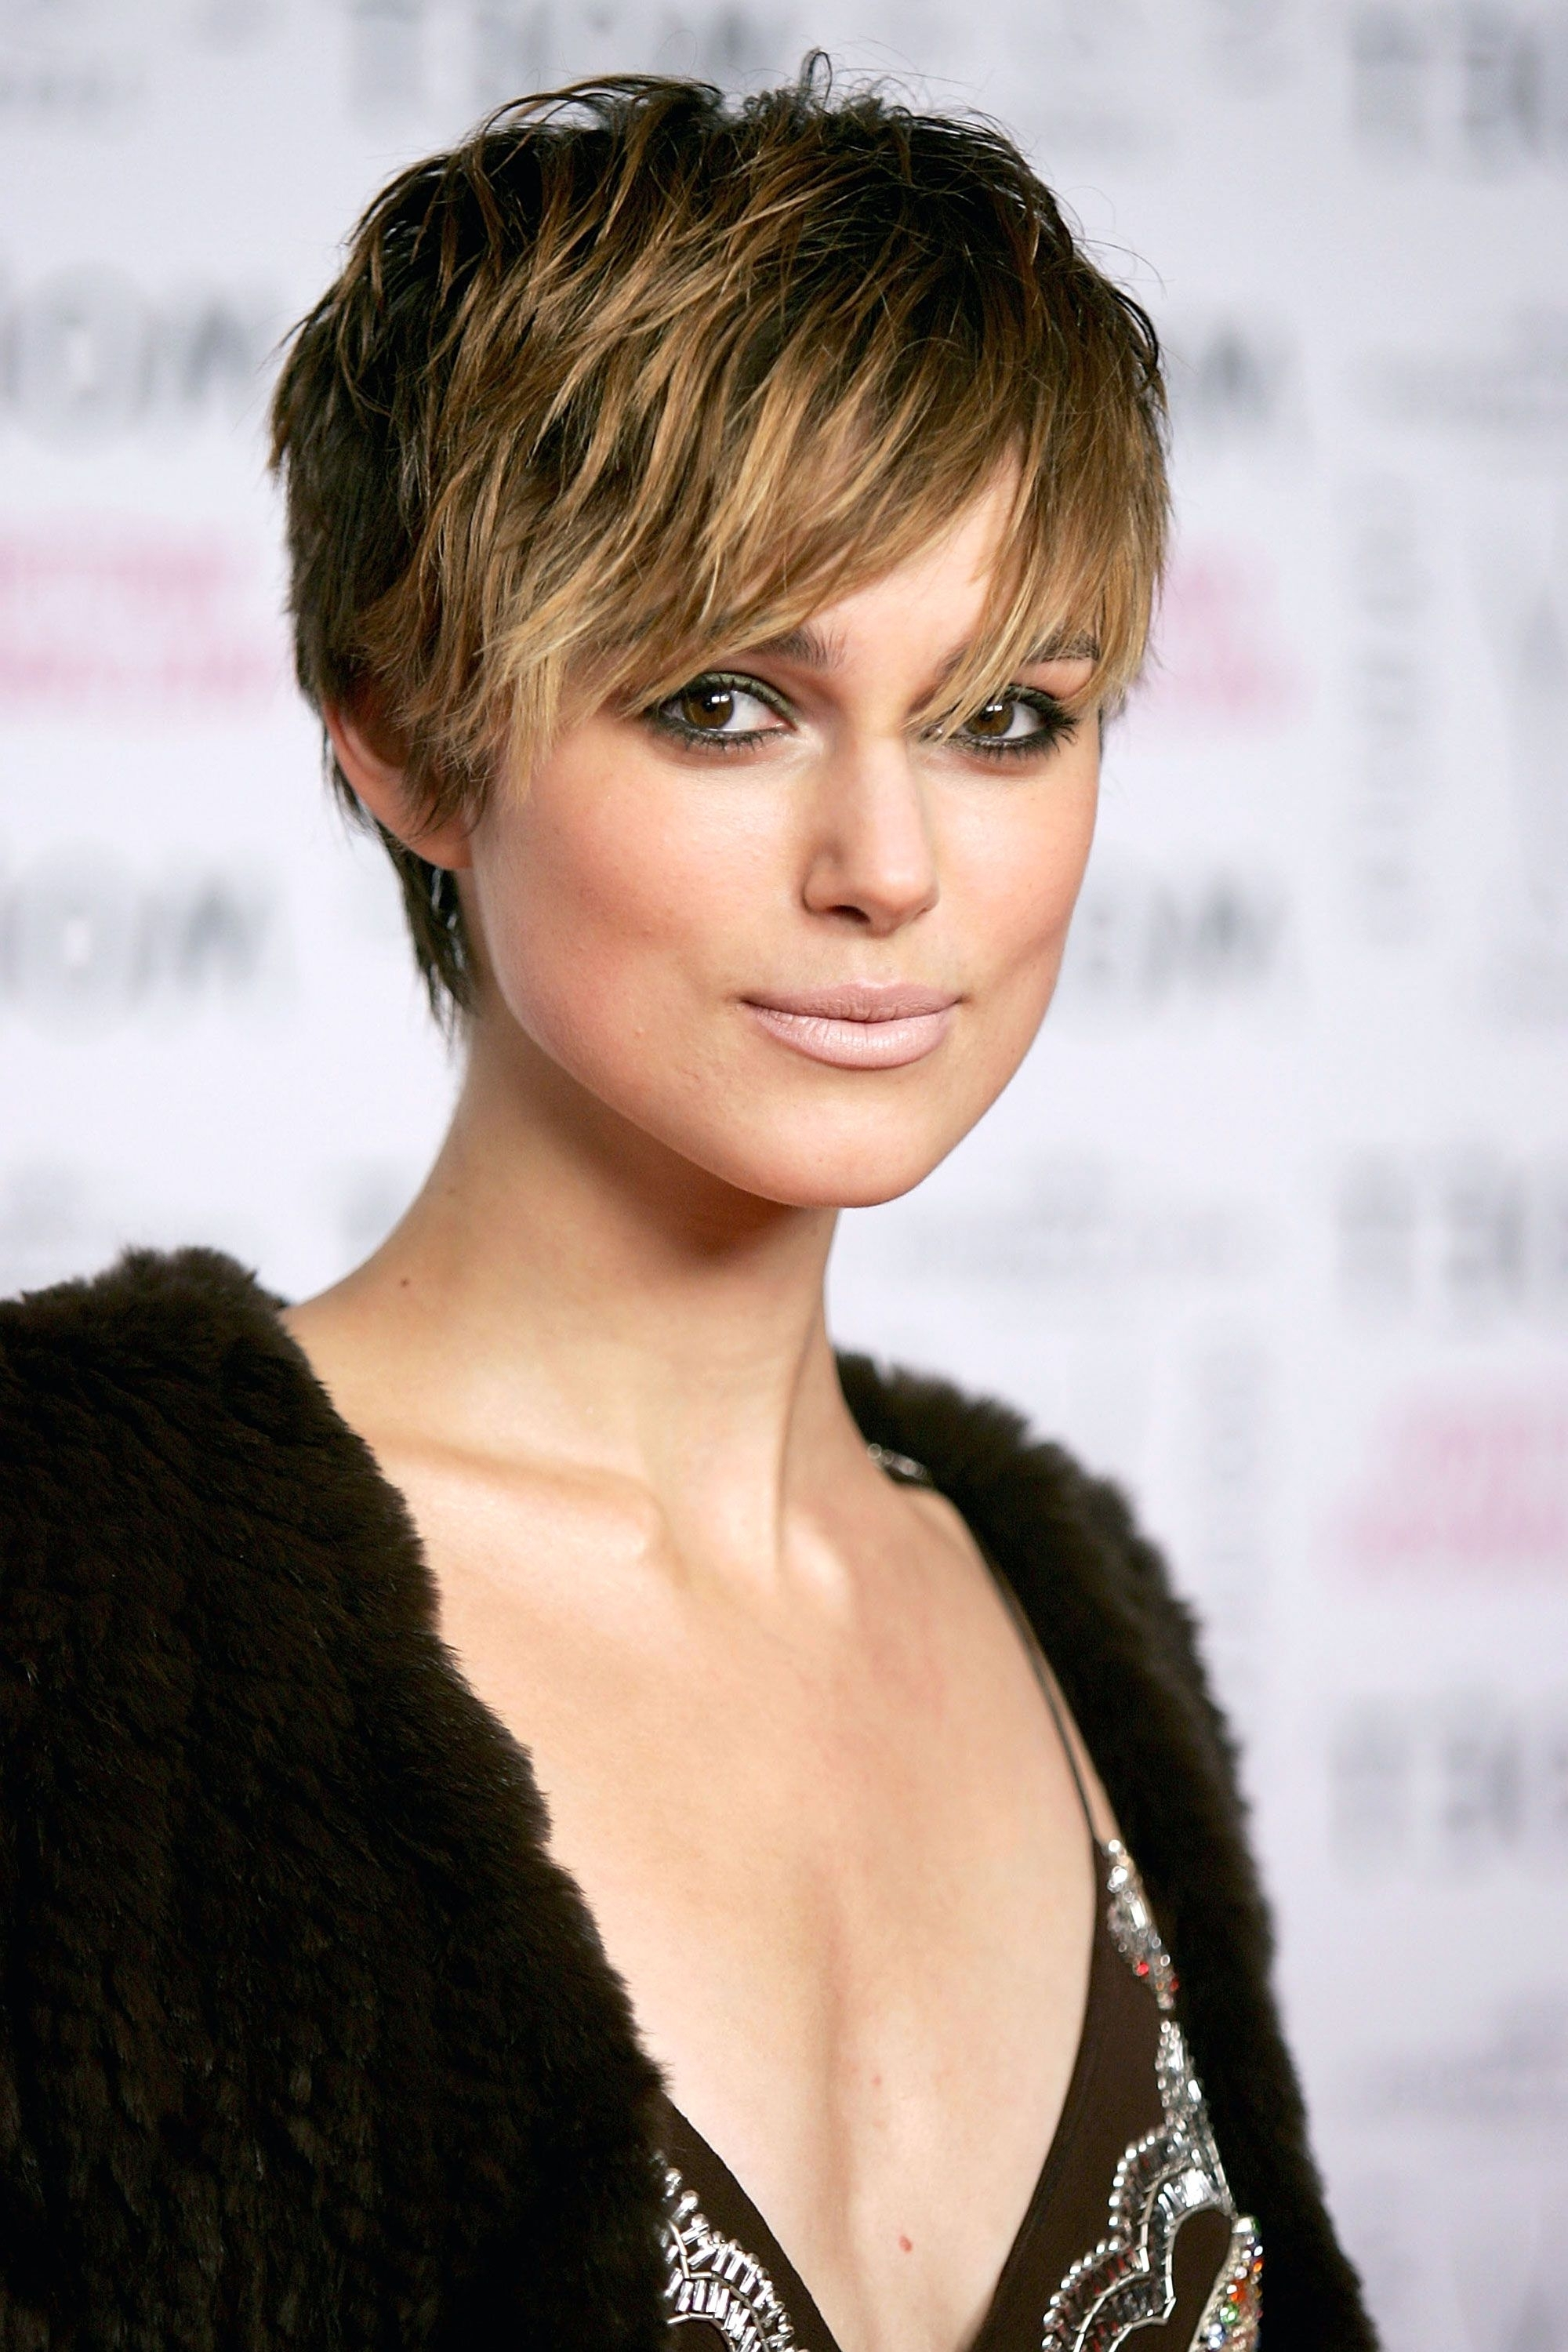 2017 Brunette Pixie Hairstyles With Feathered Layers Intended For 50+ Pixie Cuts We Love For 2018 – Short Pixie Hairstyles From (View 9 of 20)